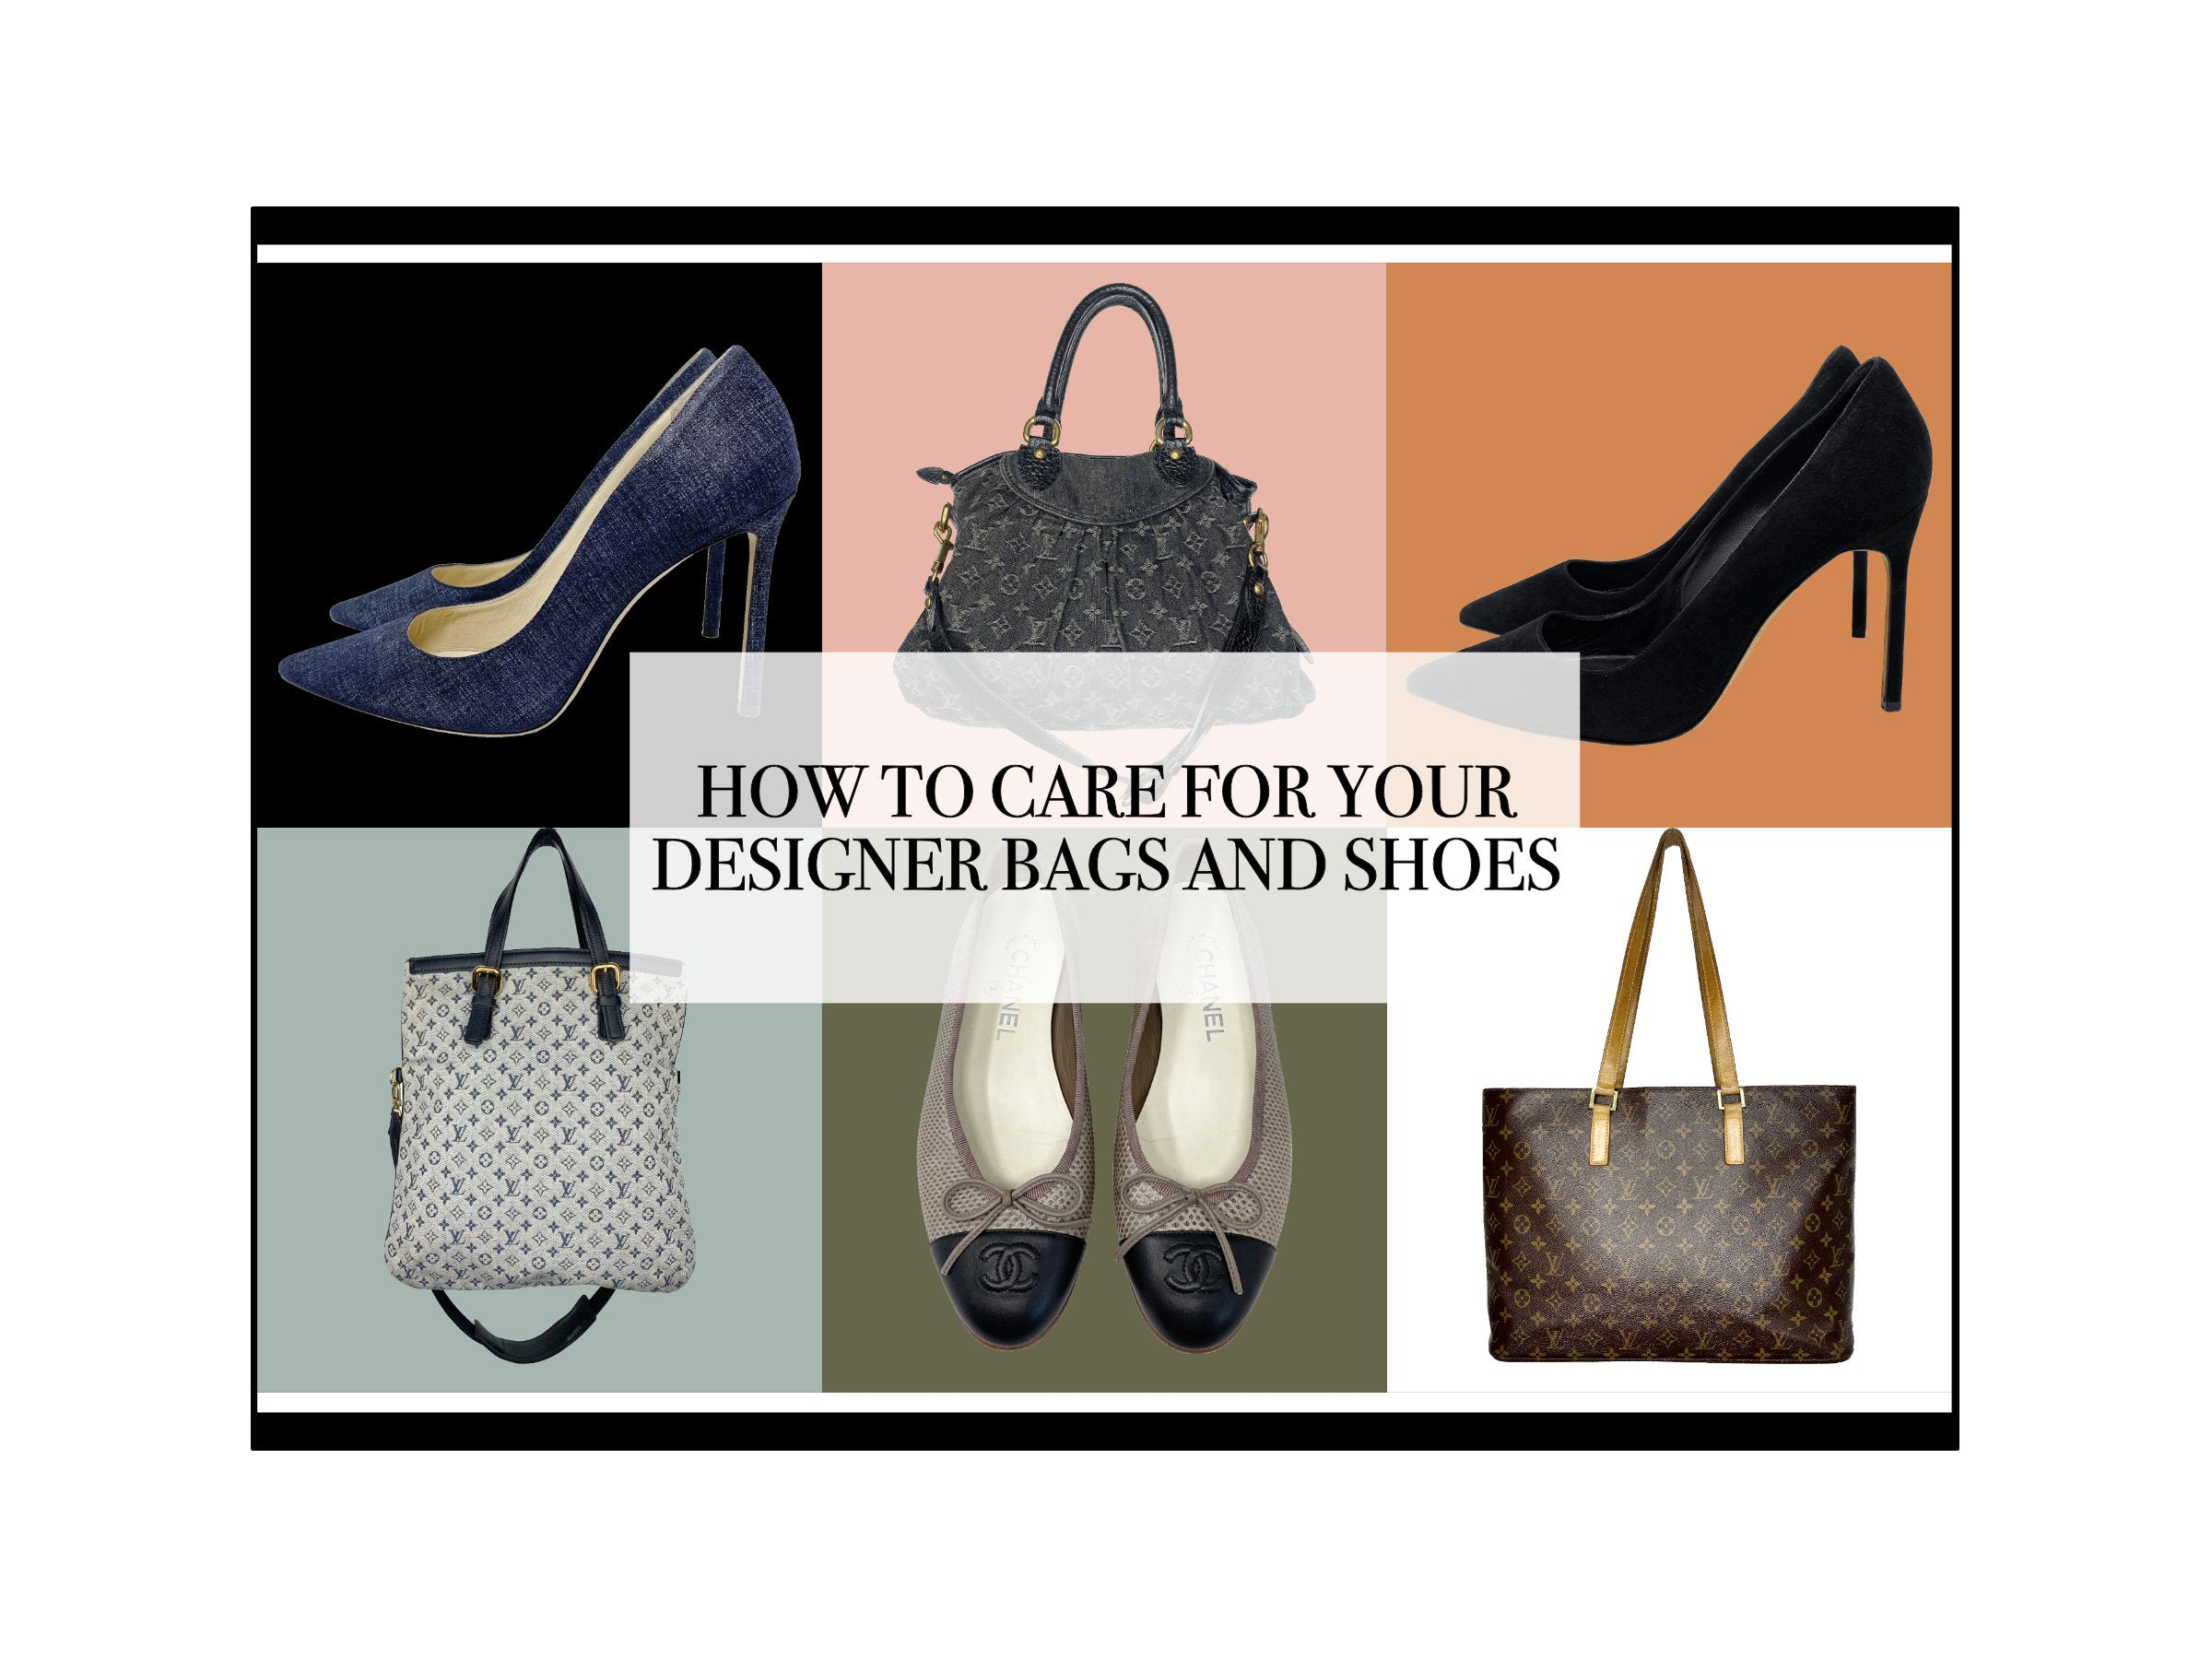 HOW TO CARE FOR YOUR DESIGNER LEATHER GOODS